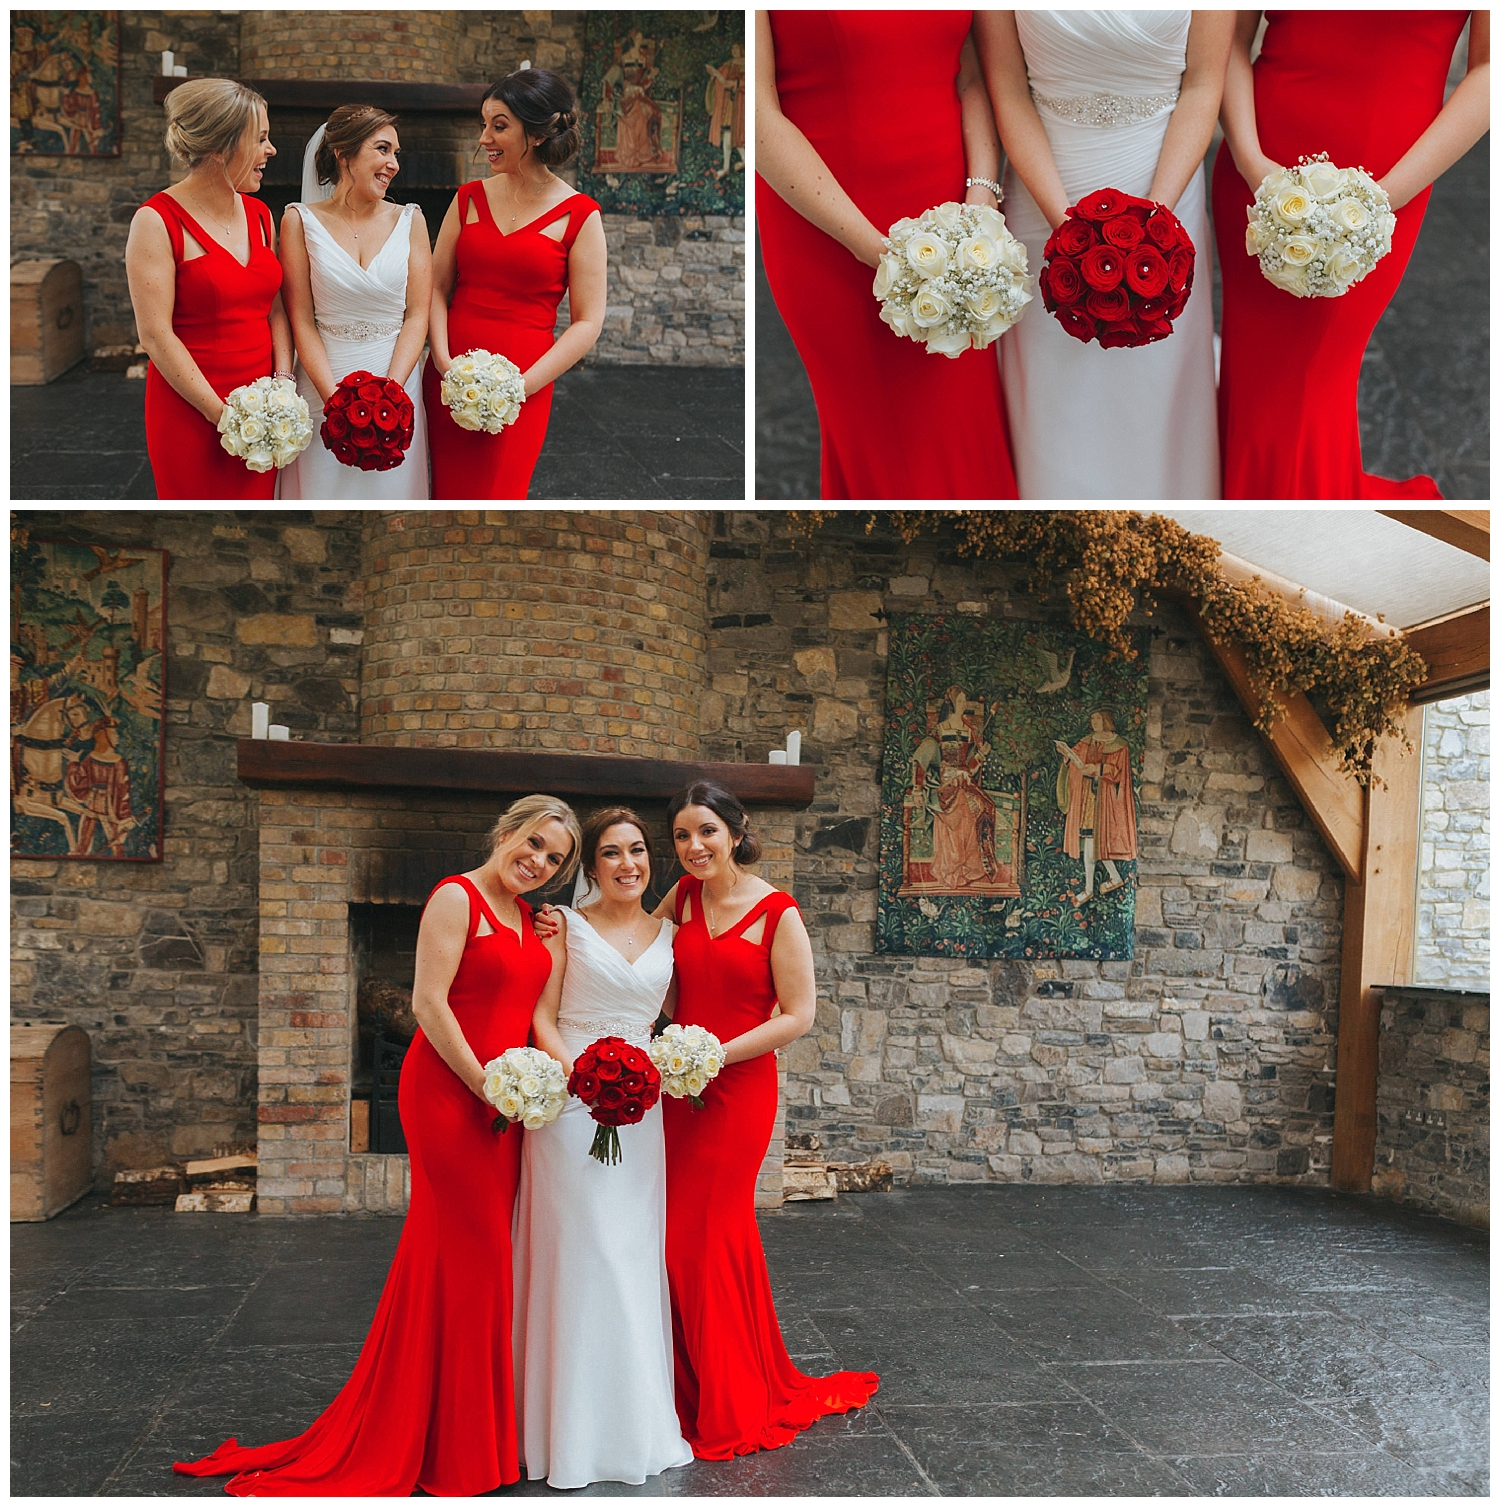 Barberstown_Castle_Wedding_Photographer_Livia_Figueiredo_581.jpg